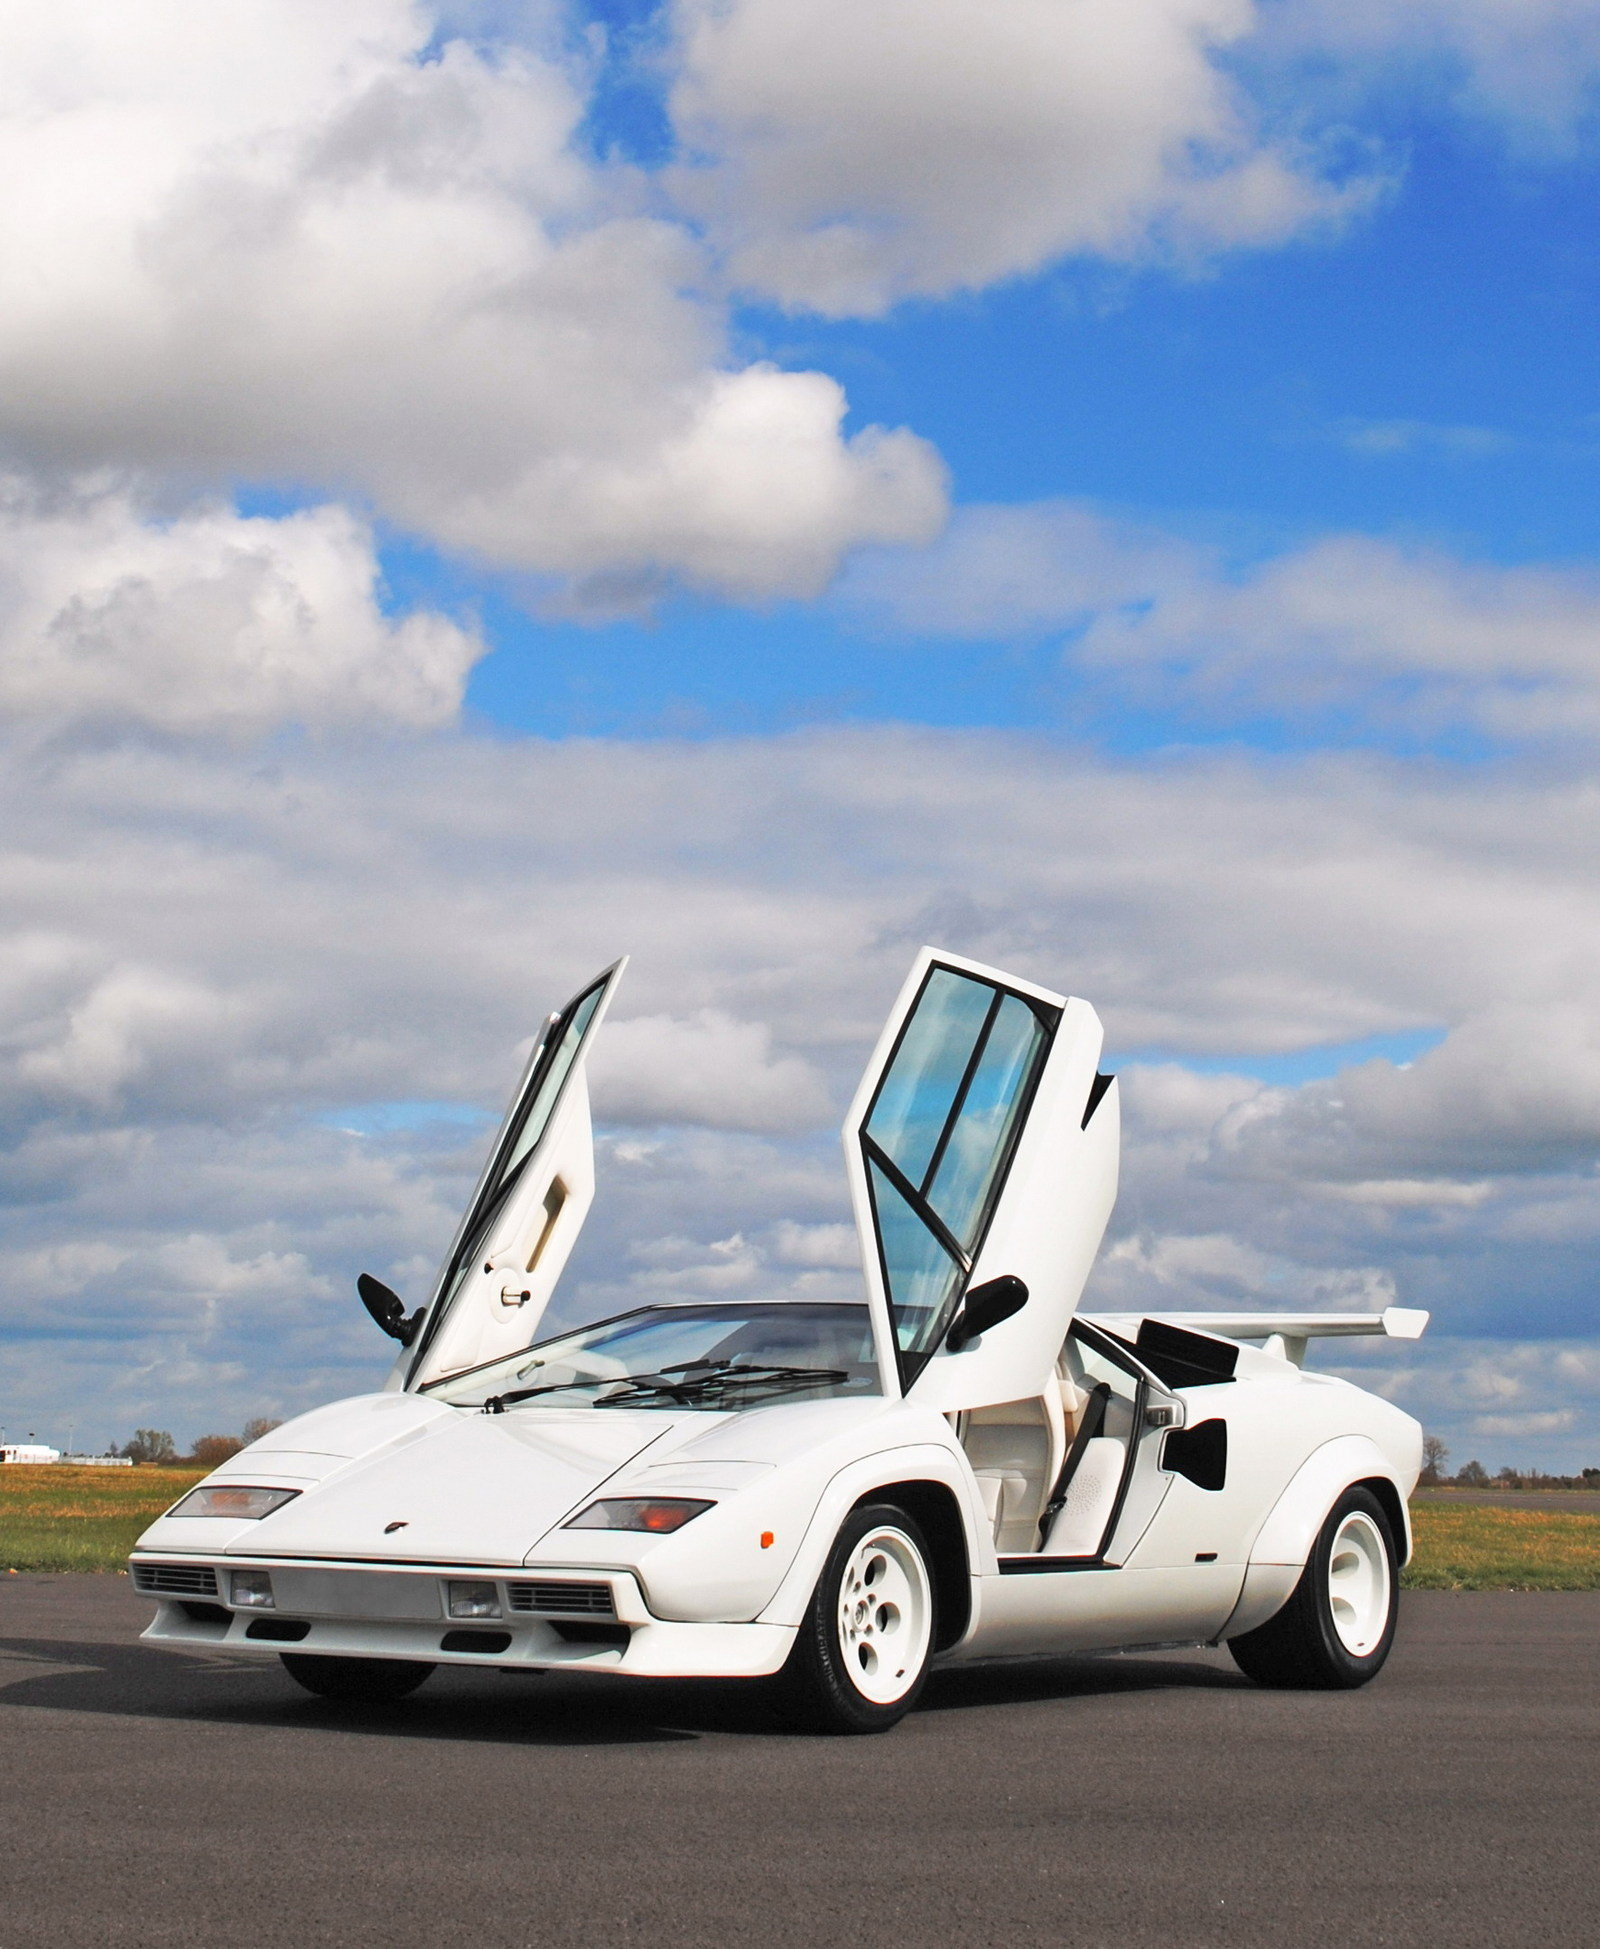 rare 1982 lamborghini countach will cross the auction block picture 552087 car news top speed. Black Bedroom Furniture Sets. Home Design Ideas